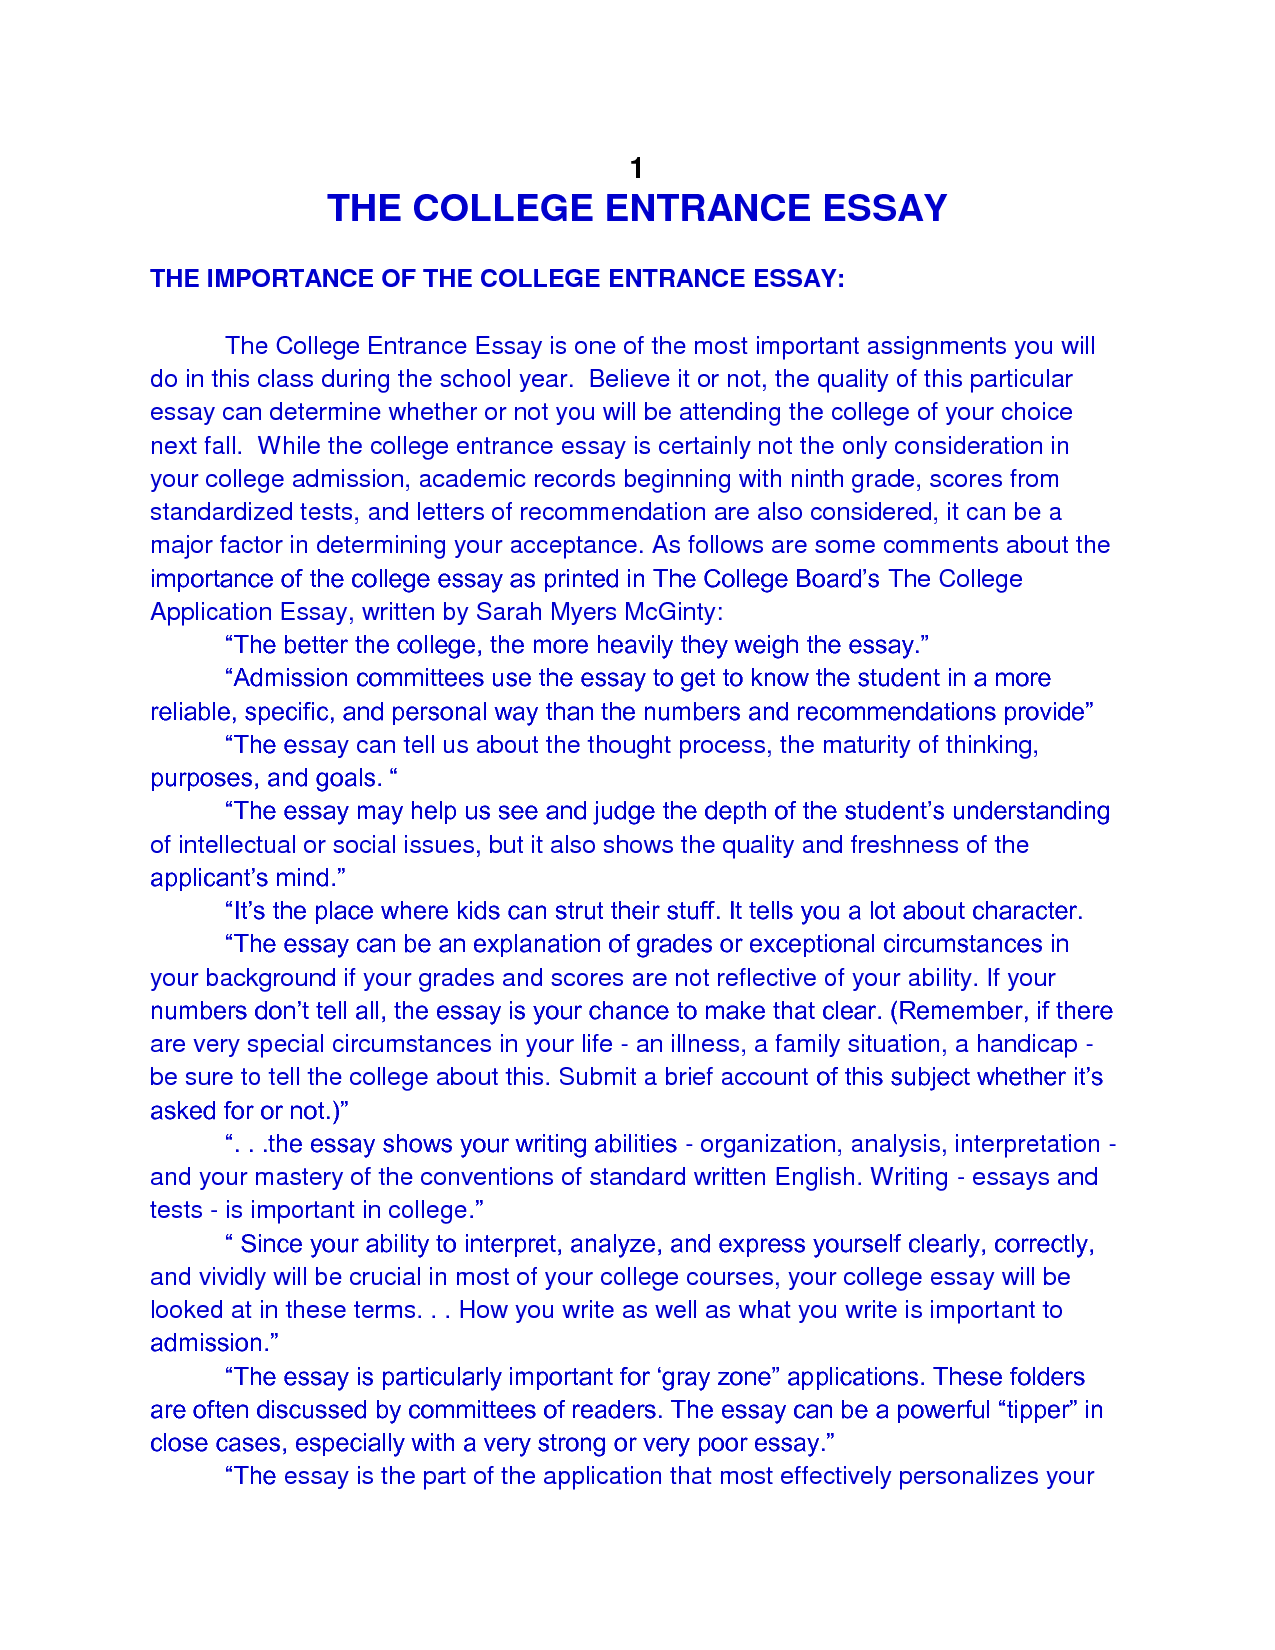 002 Nmij5vyvqc Write My College Essay Marvelous Can I A Story For What To On Quiz Full